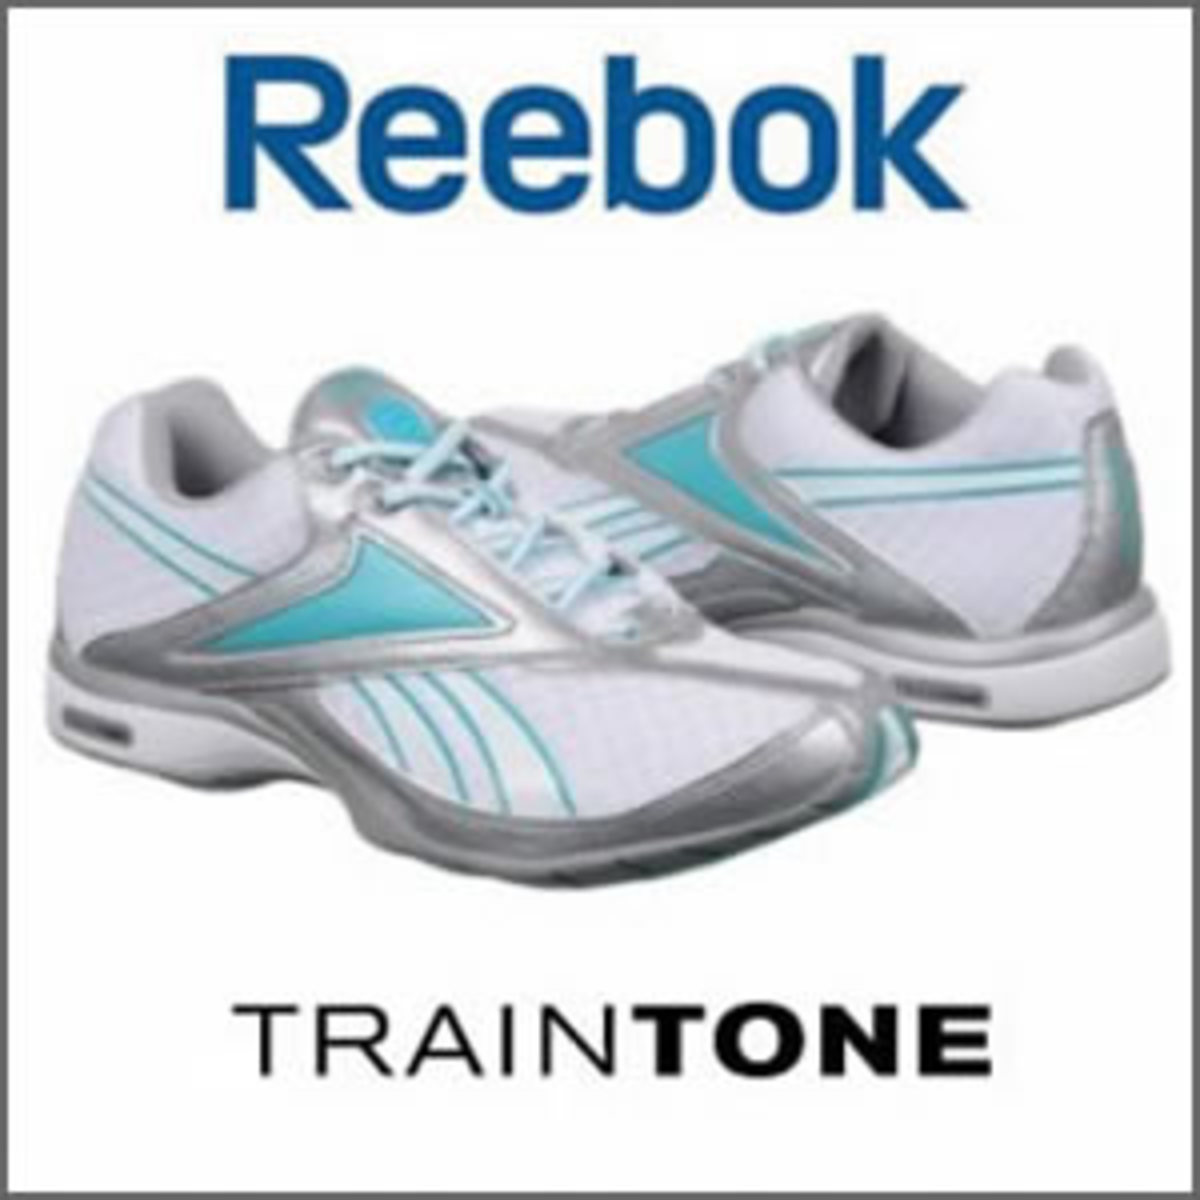 Reebok TrainTone, /  TrainTone Slimm Toning Shoes for the gym